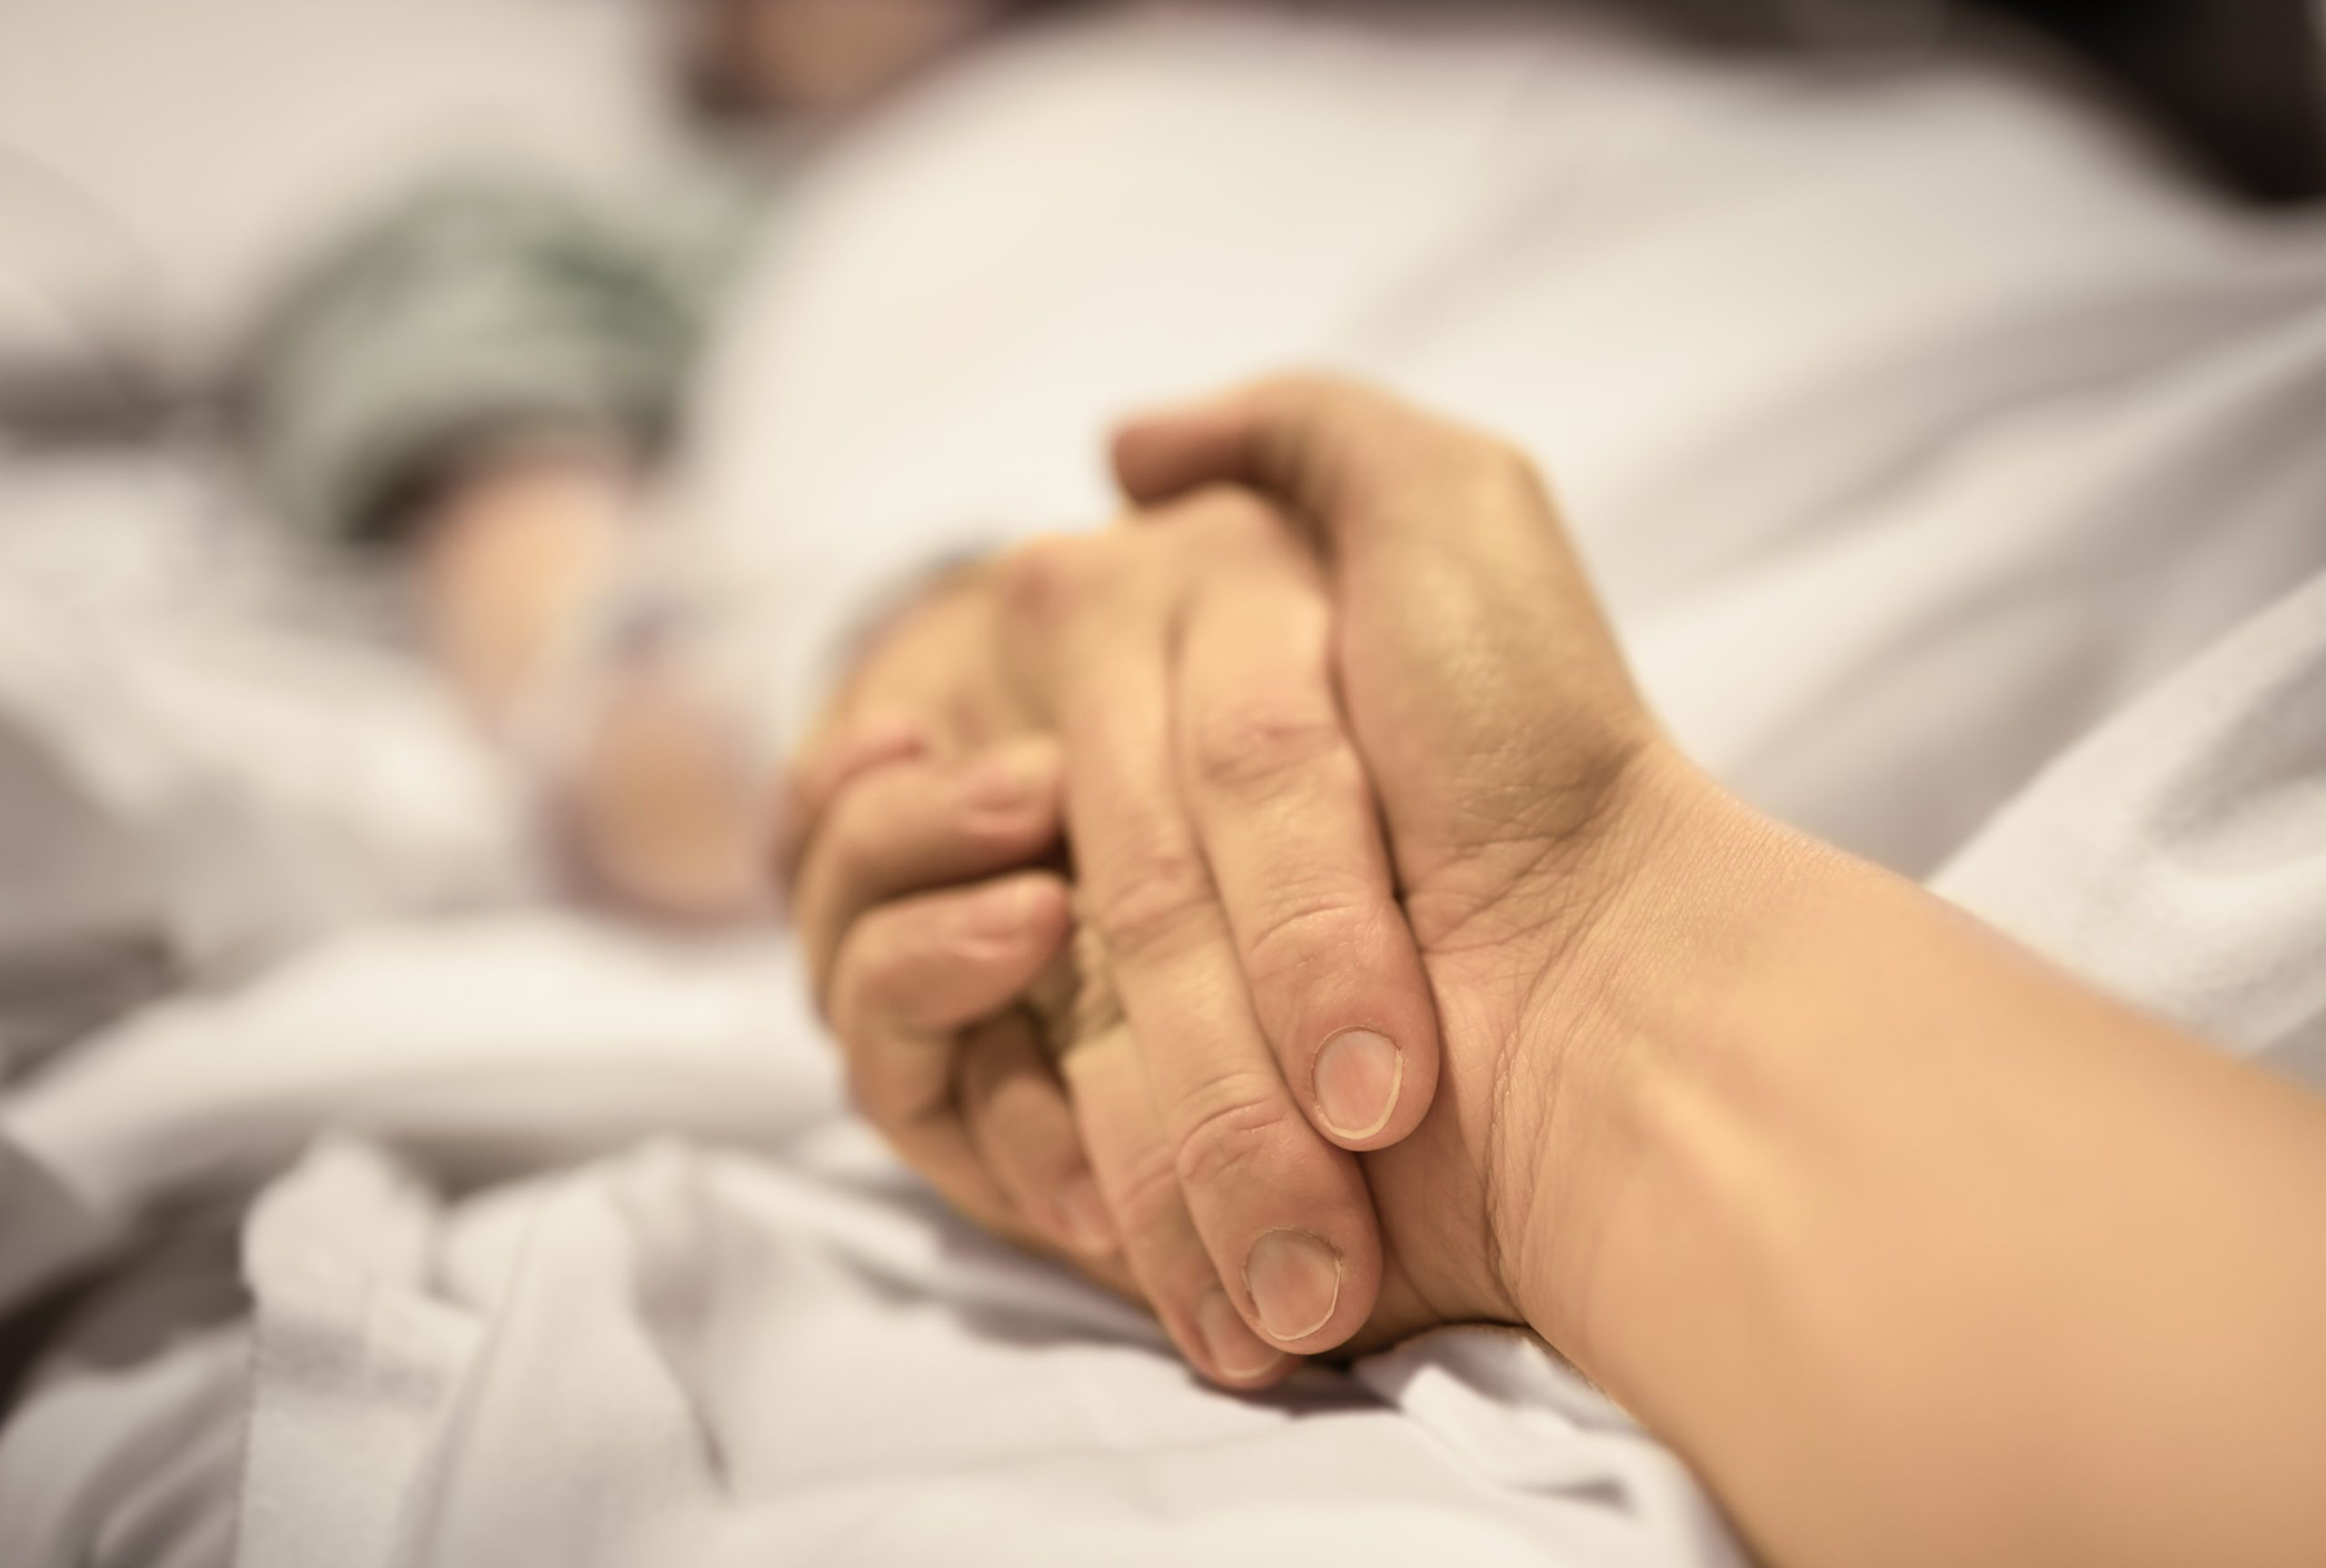 Western Australia looks set to legalise voluntary assisted dying. Here's what's likely to happen from next week